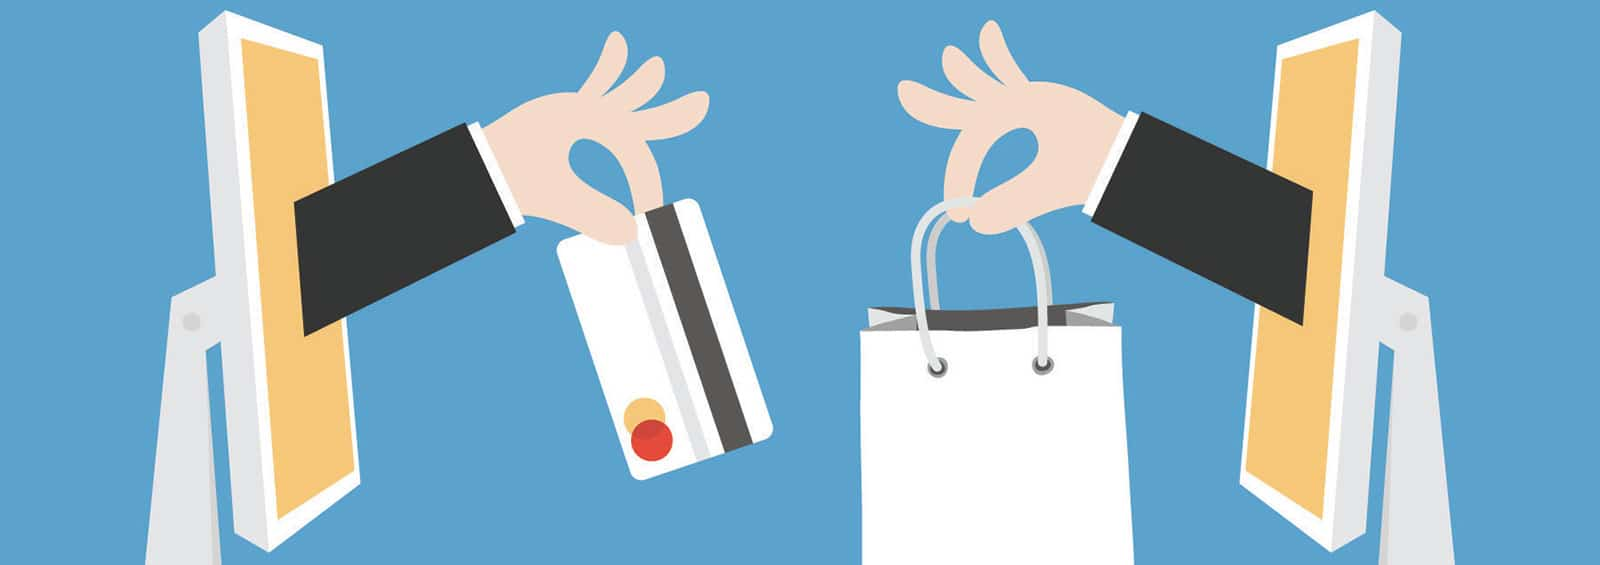 Drop Shipping: Start Your Online Shop Without Products